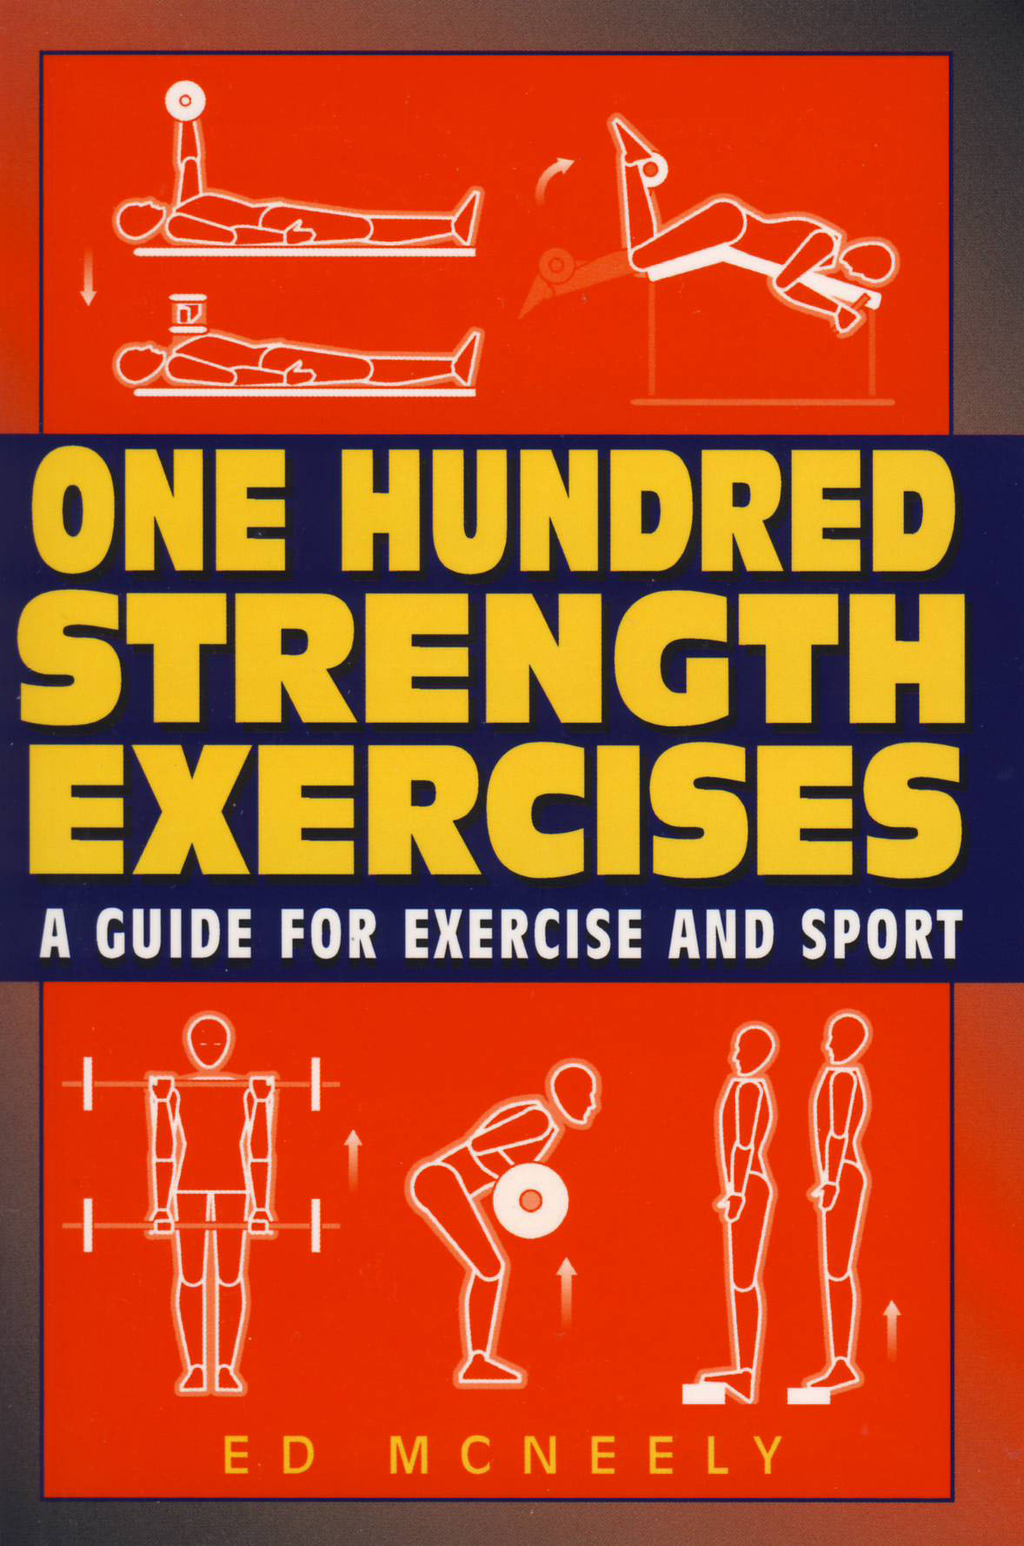 One Hundred Strength Exercises